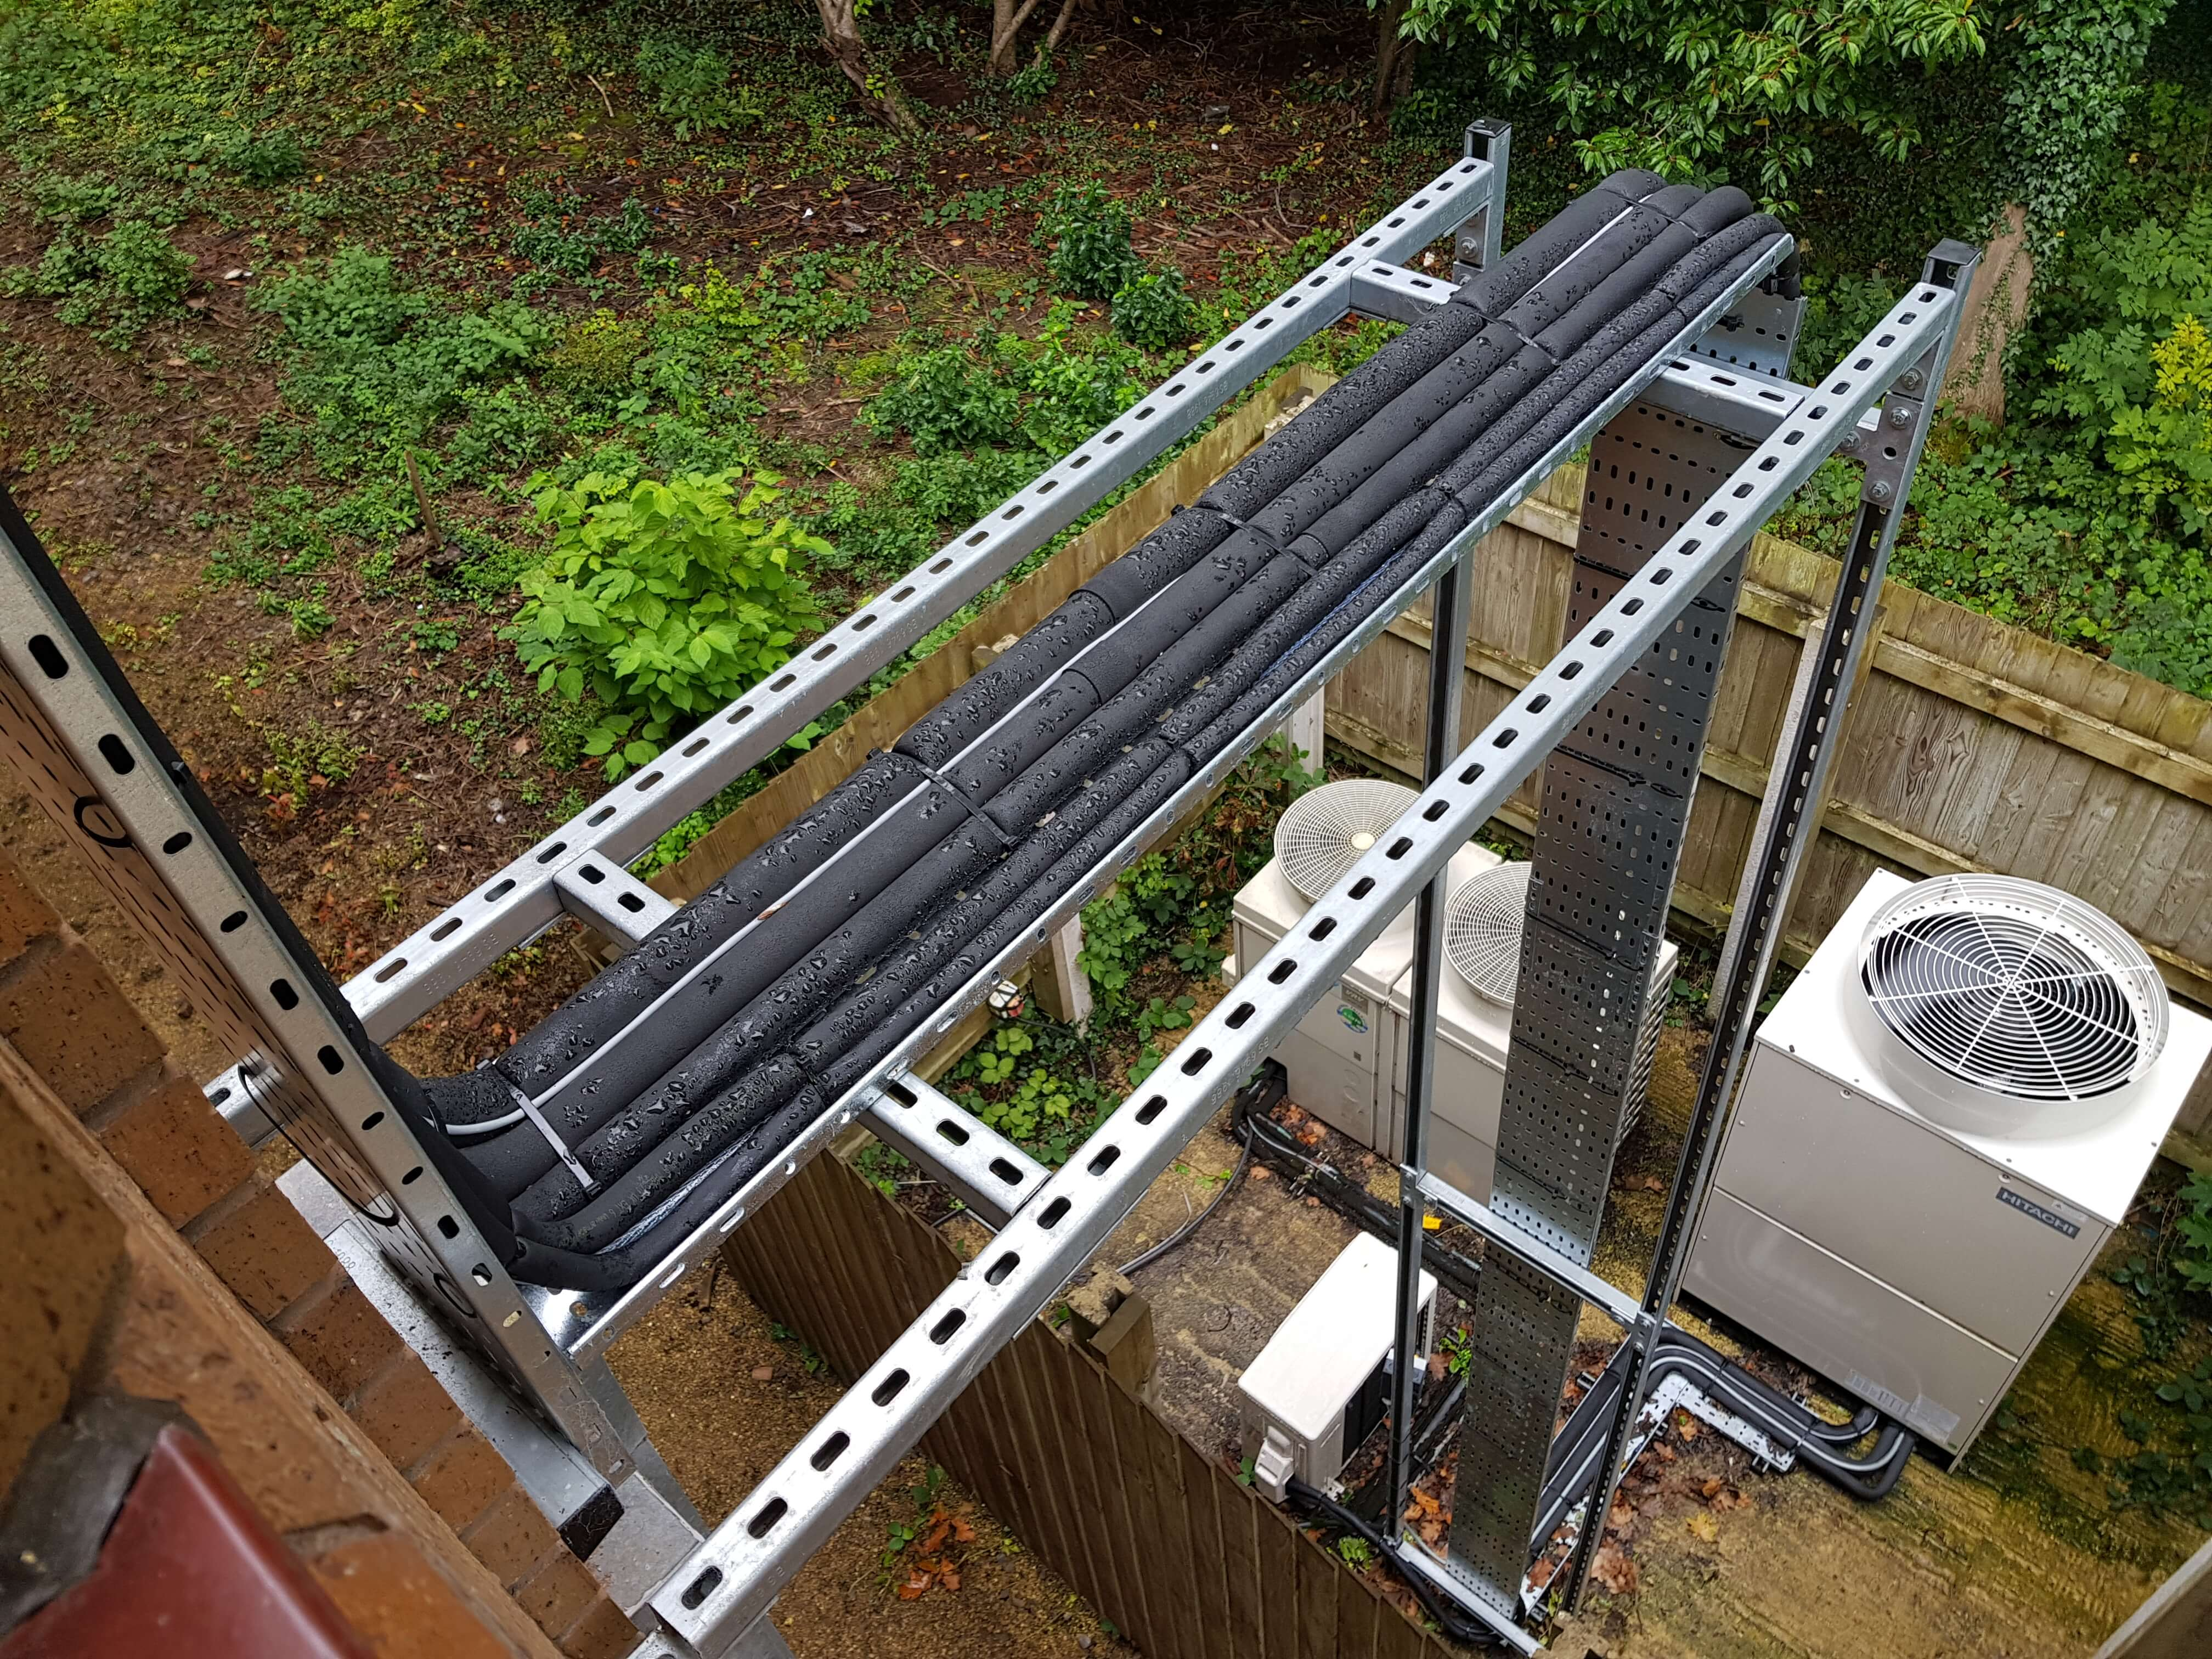 Air conditioning pipework trays installed